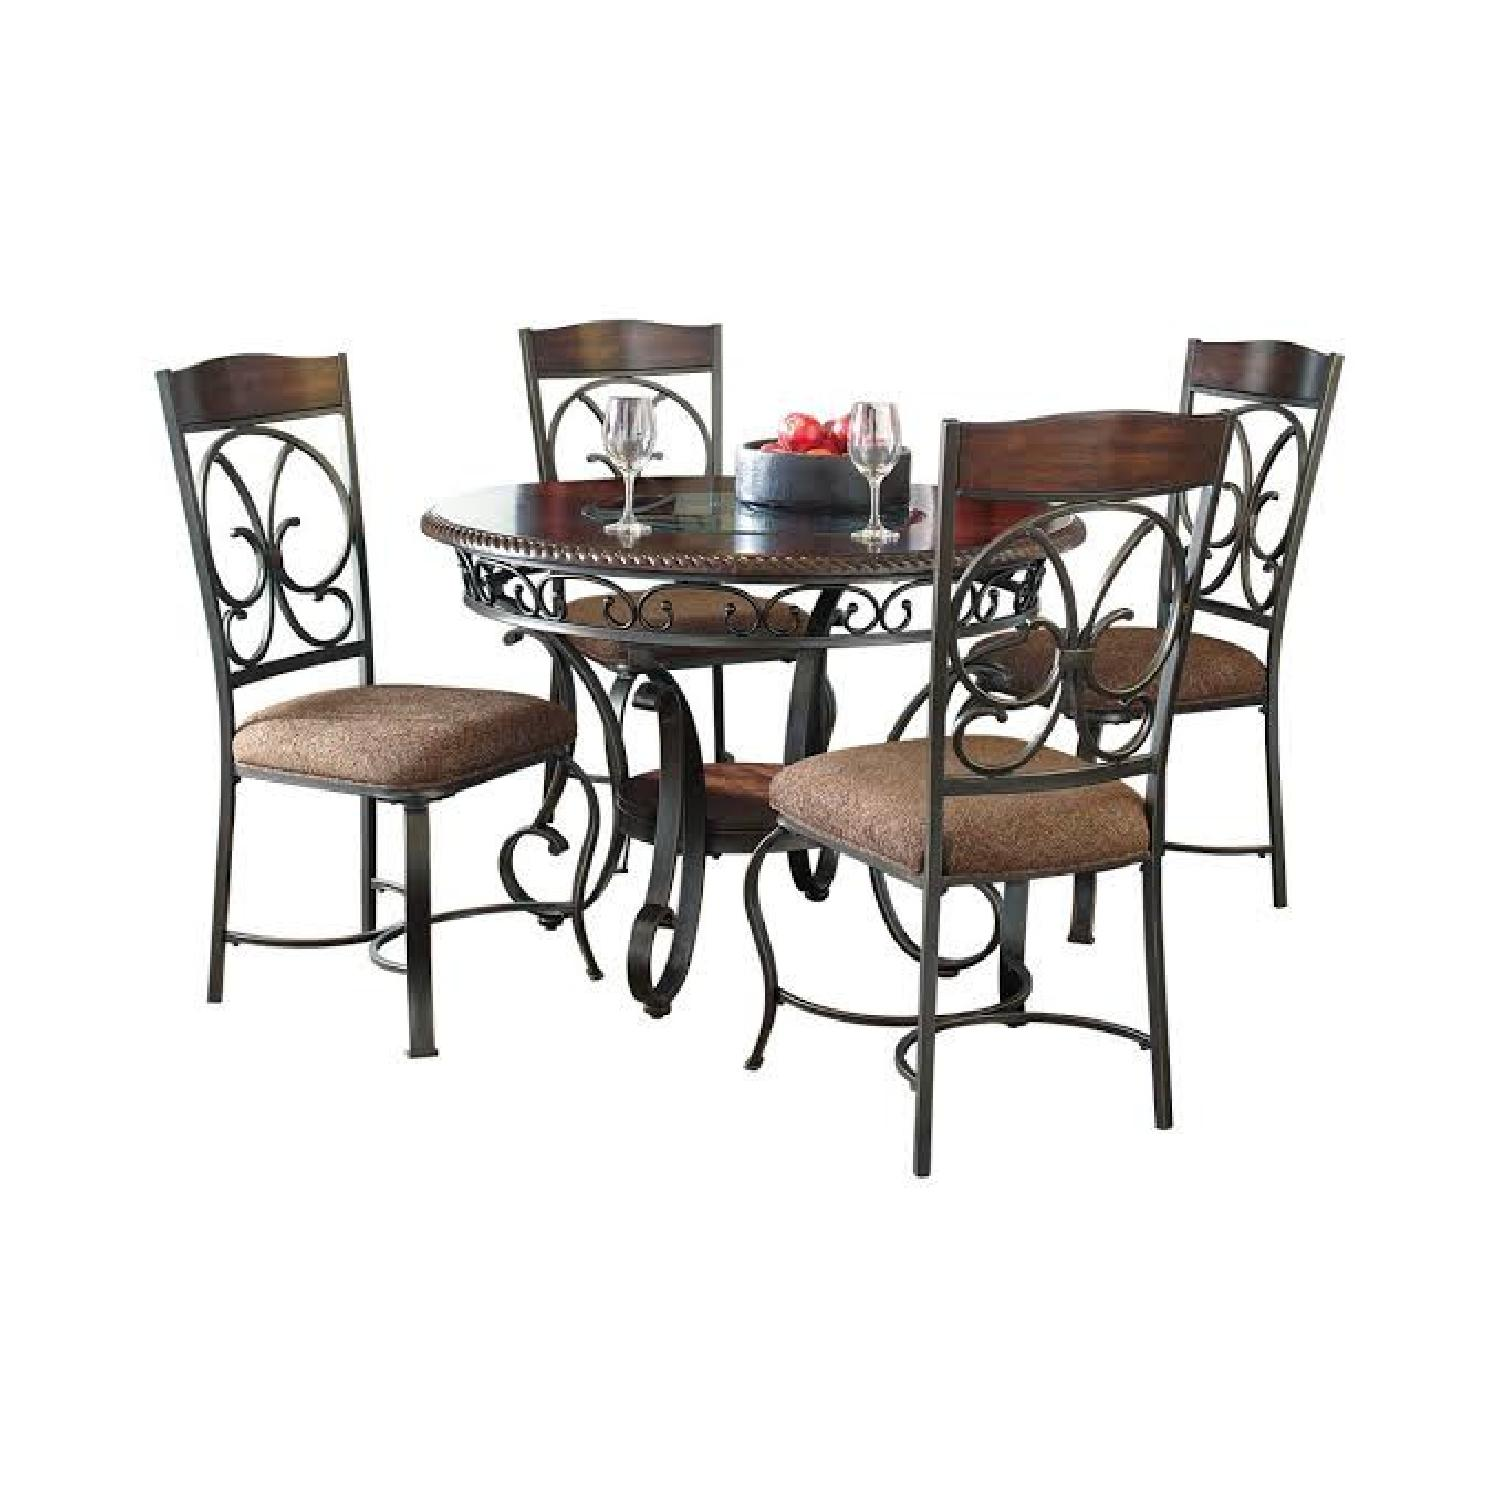 Ashley Glambrey Dining Table Set of 4 (28inches height) - image-5